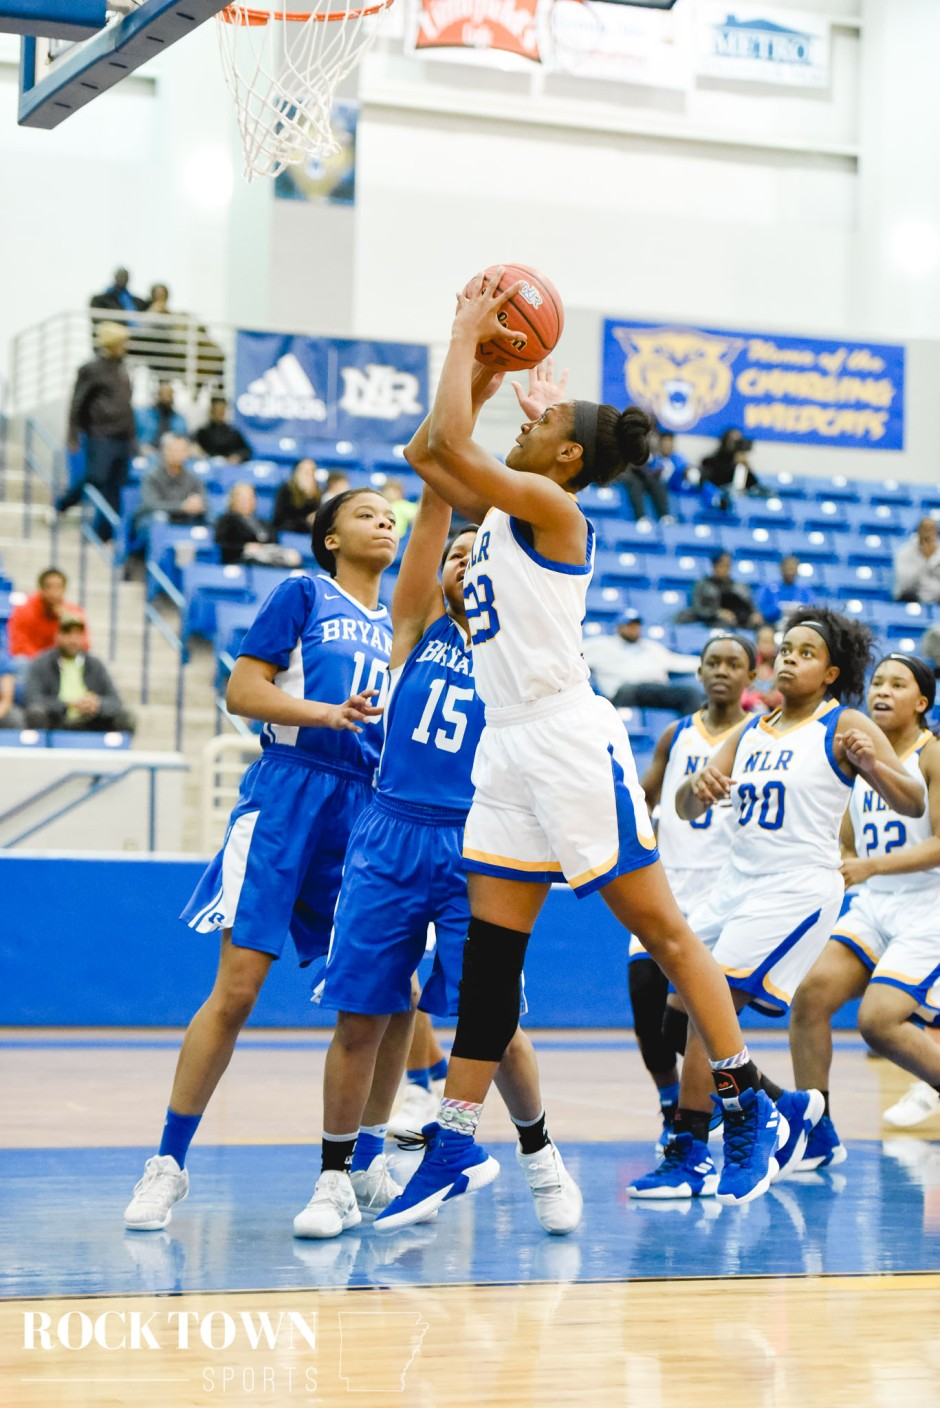 nlr_bryant_basketball_2019-26